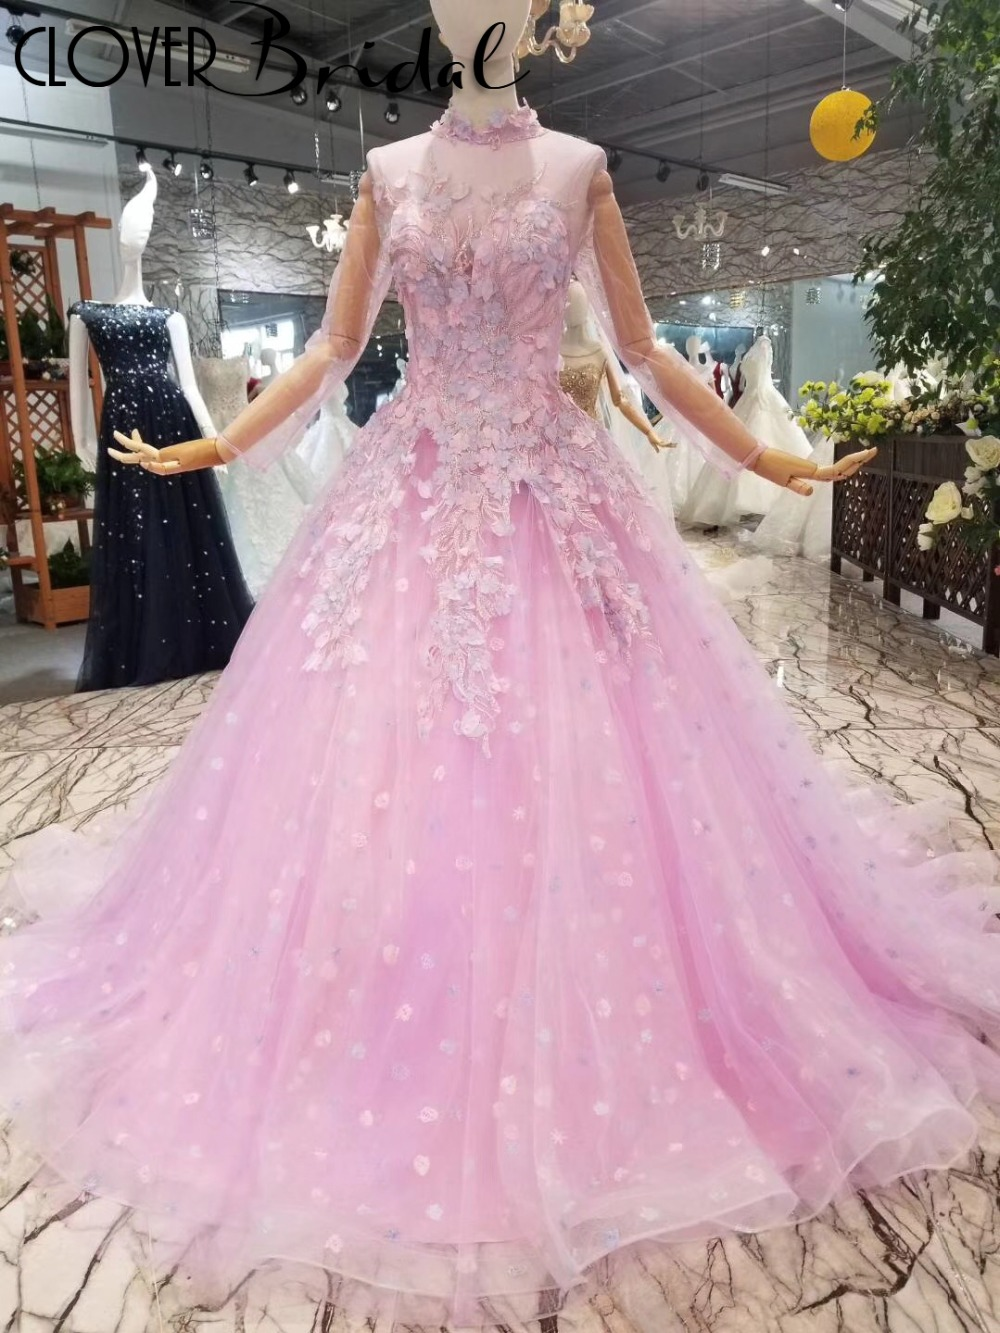 2018 summer romantic high neck long illusion long sleeves girls long party dress with lots leaves flowers all over skirt